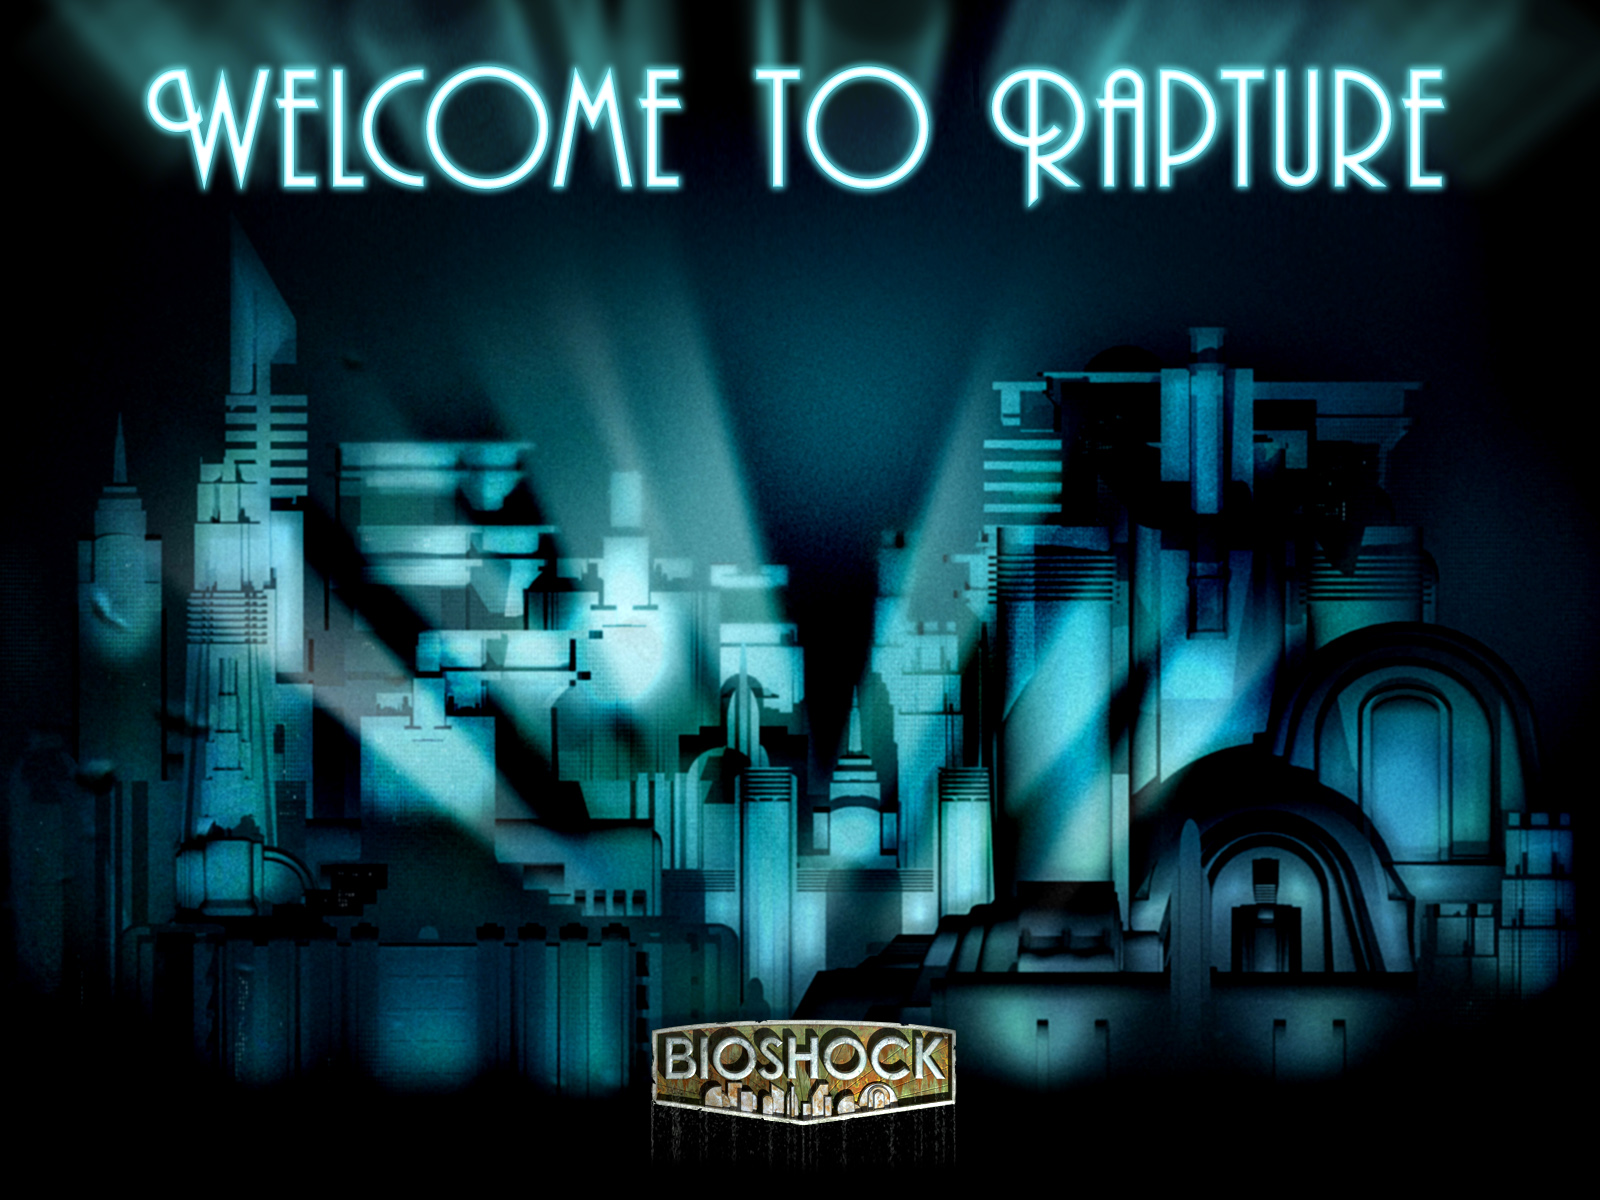 Welcome to Rapture !